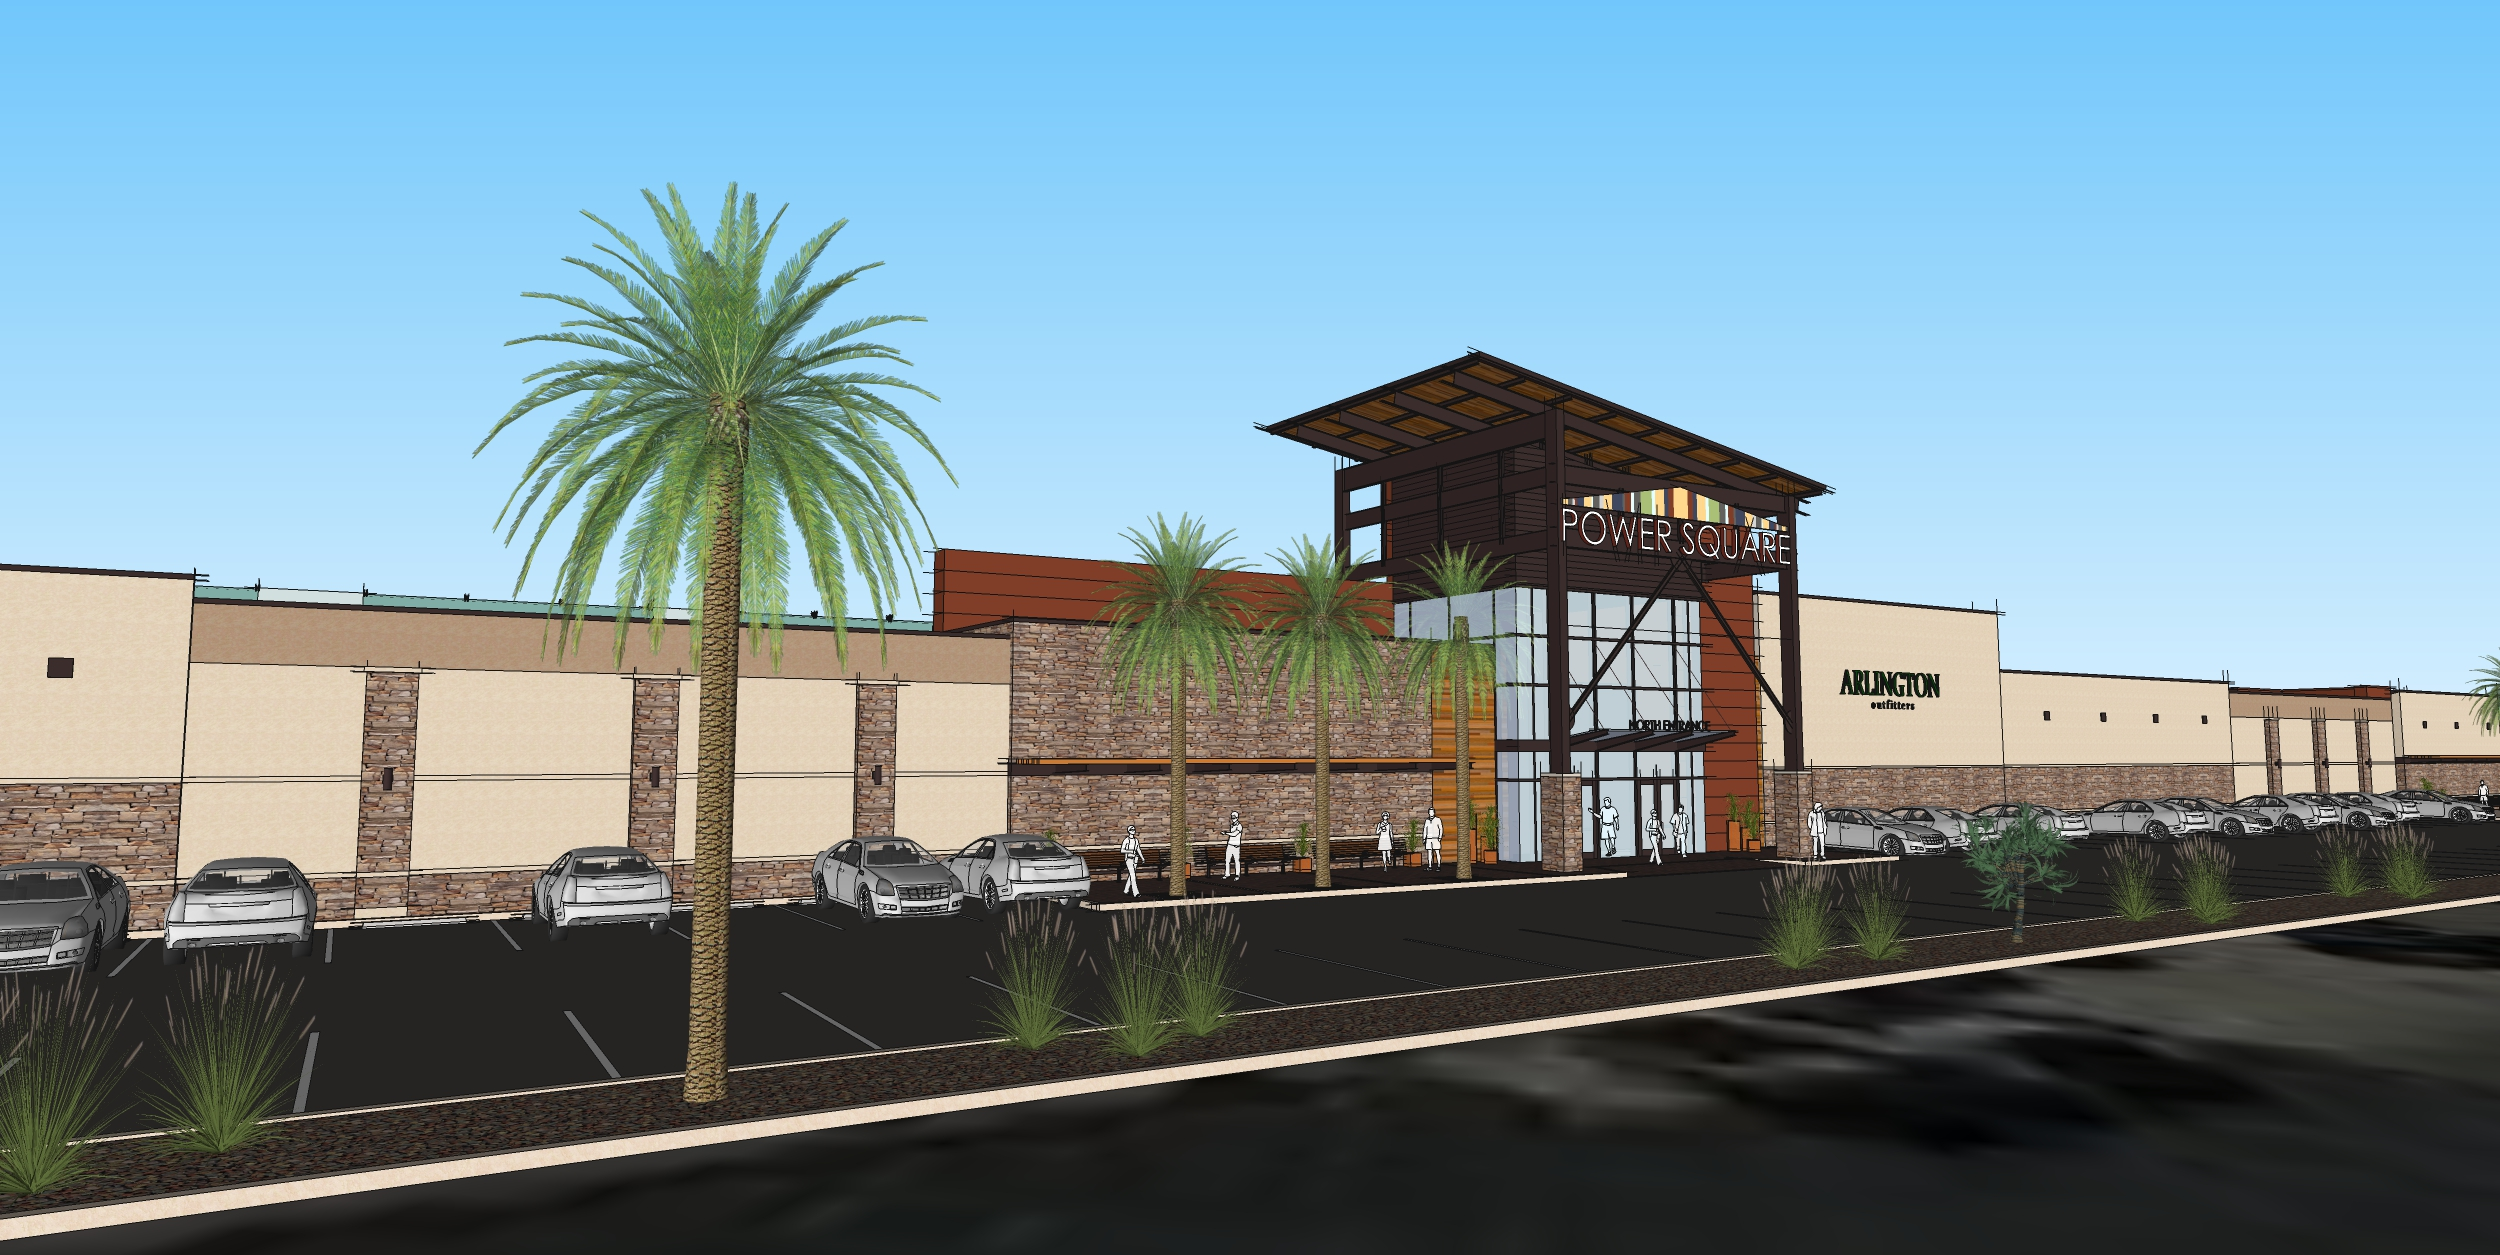 ADW-Office+Mixed-Use-Retail-Restaurant-Power-Square-Mesa-AZ-Massing-1.jpg